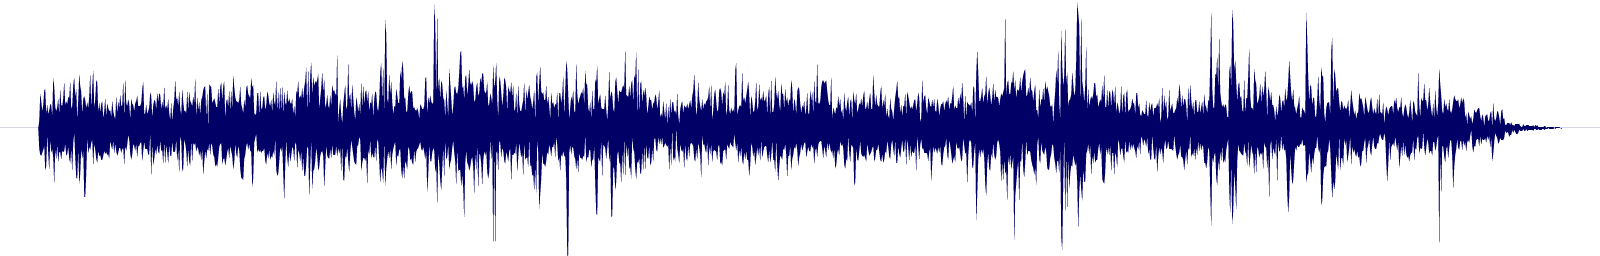 waveform of track #131924